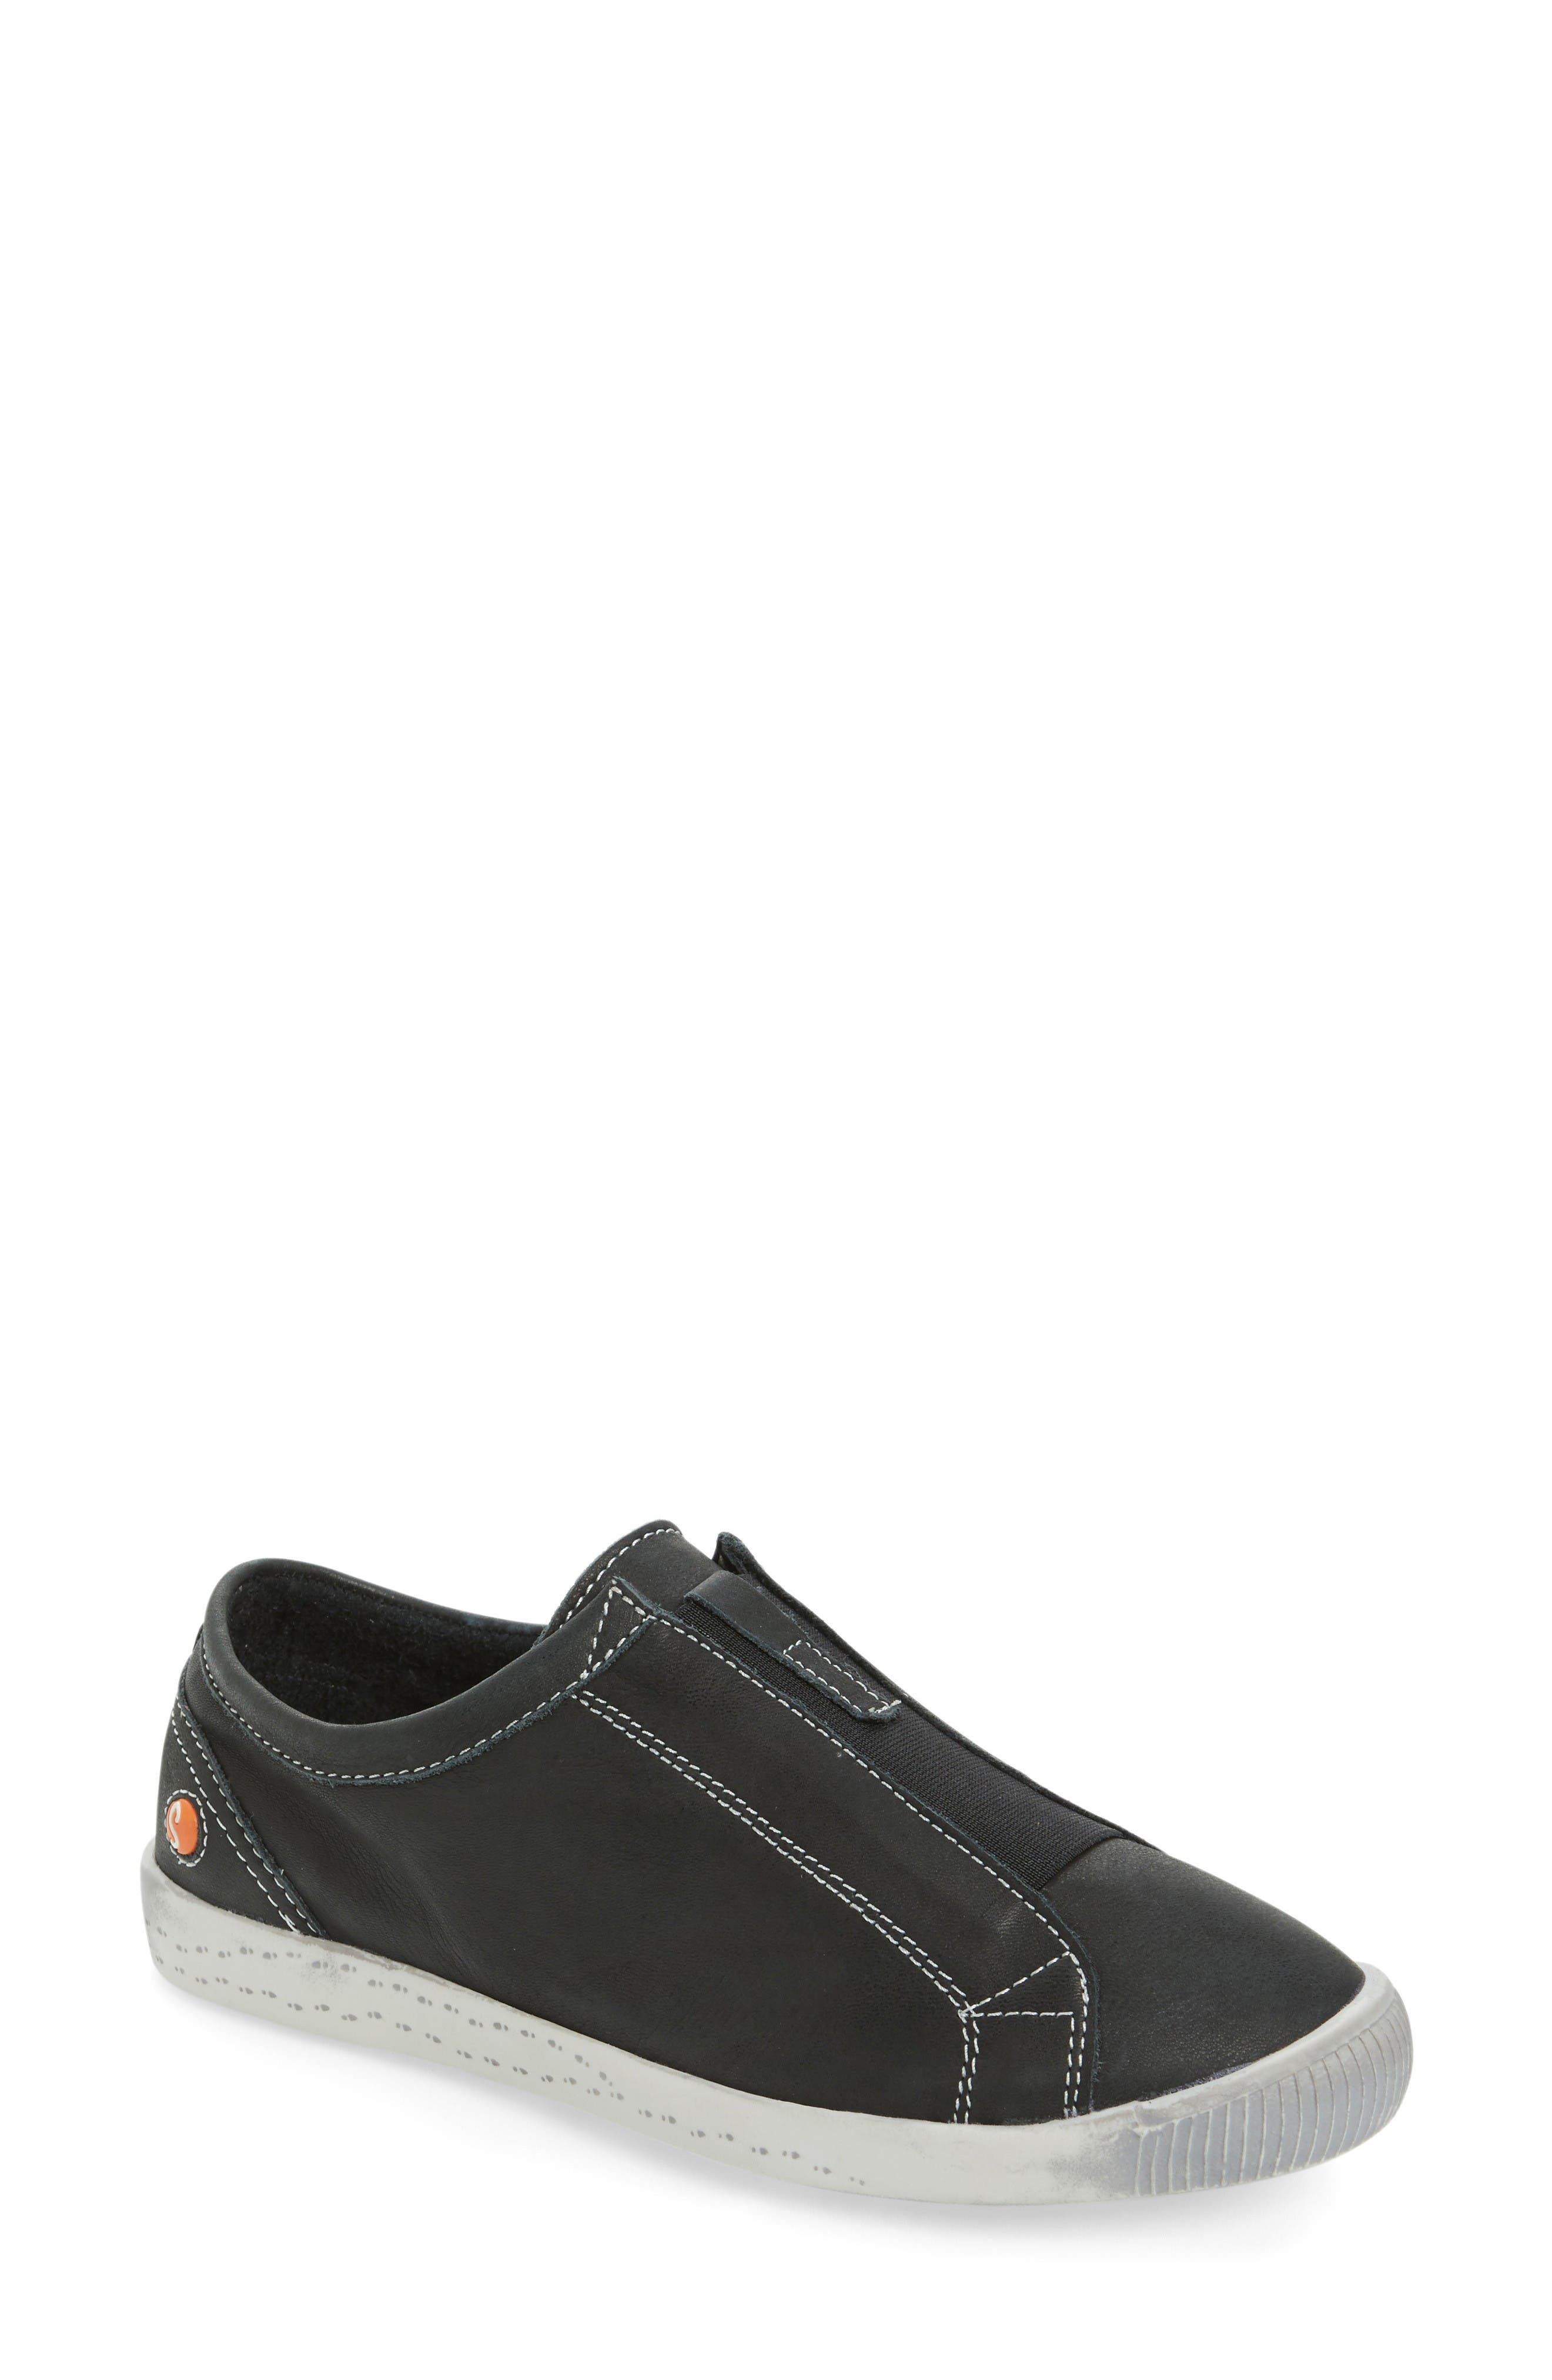 Alternate Image 1 Selected - Softinos by Fly London Ilo Slip-On Sneaker (Women)